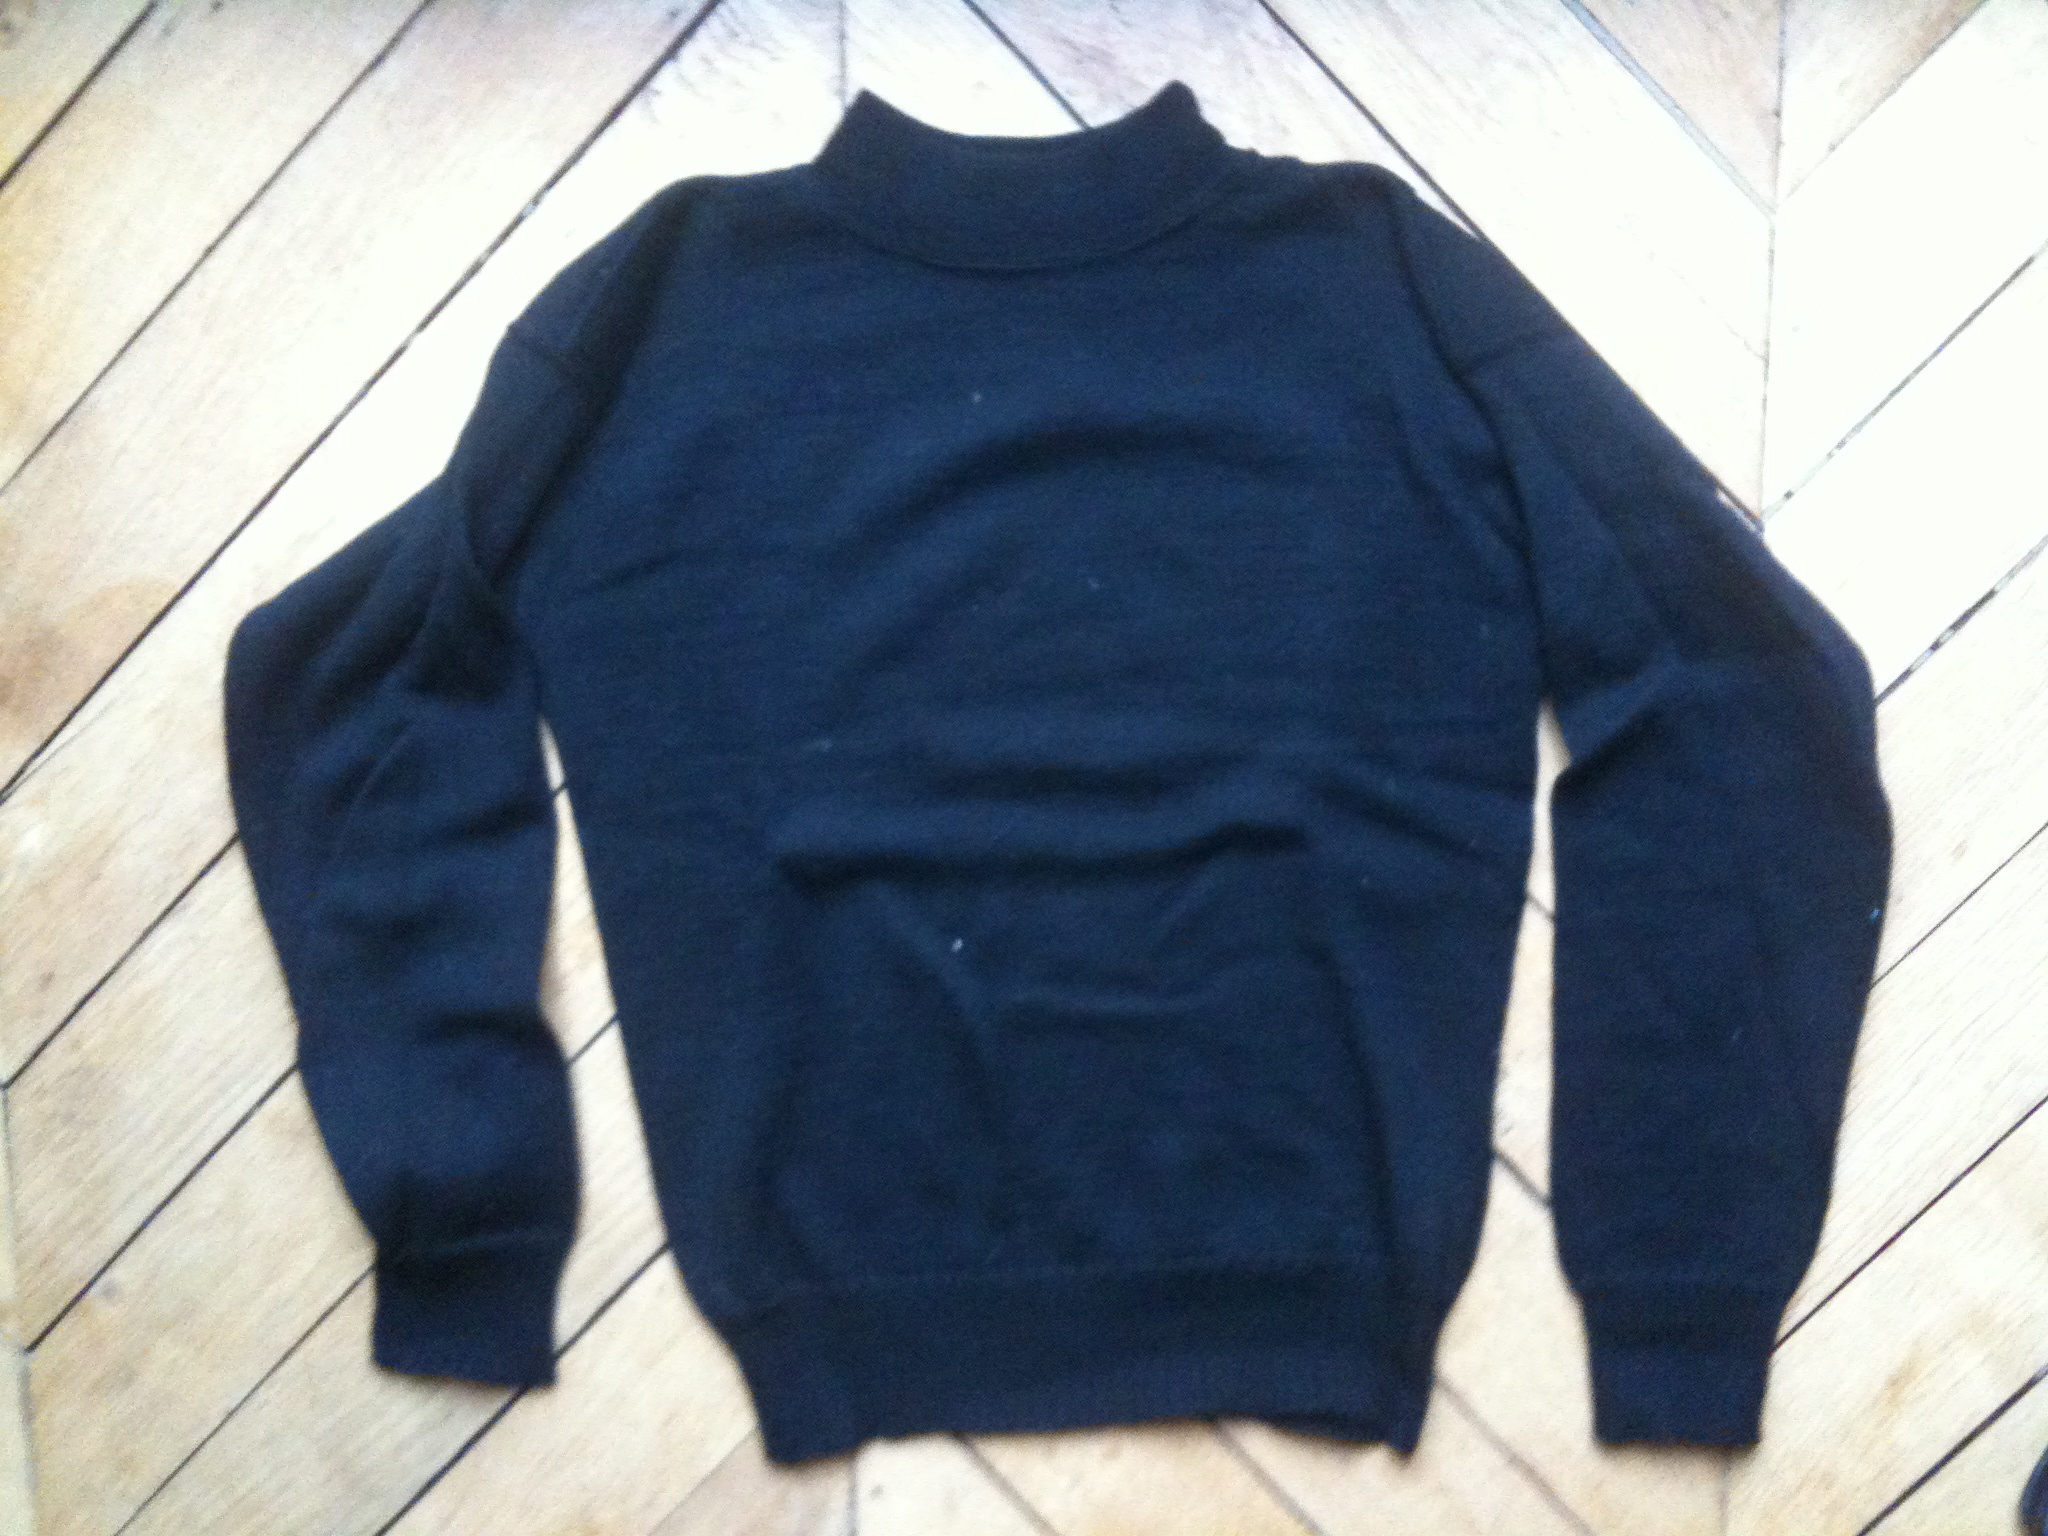 Us Navy Wool Sweater - Cardigan With Buttons